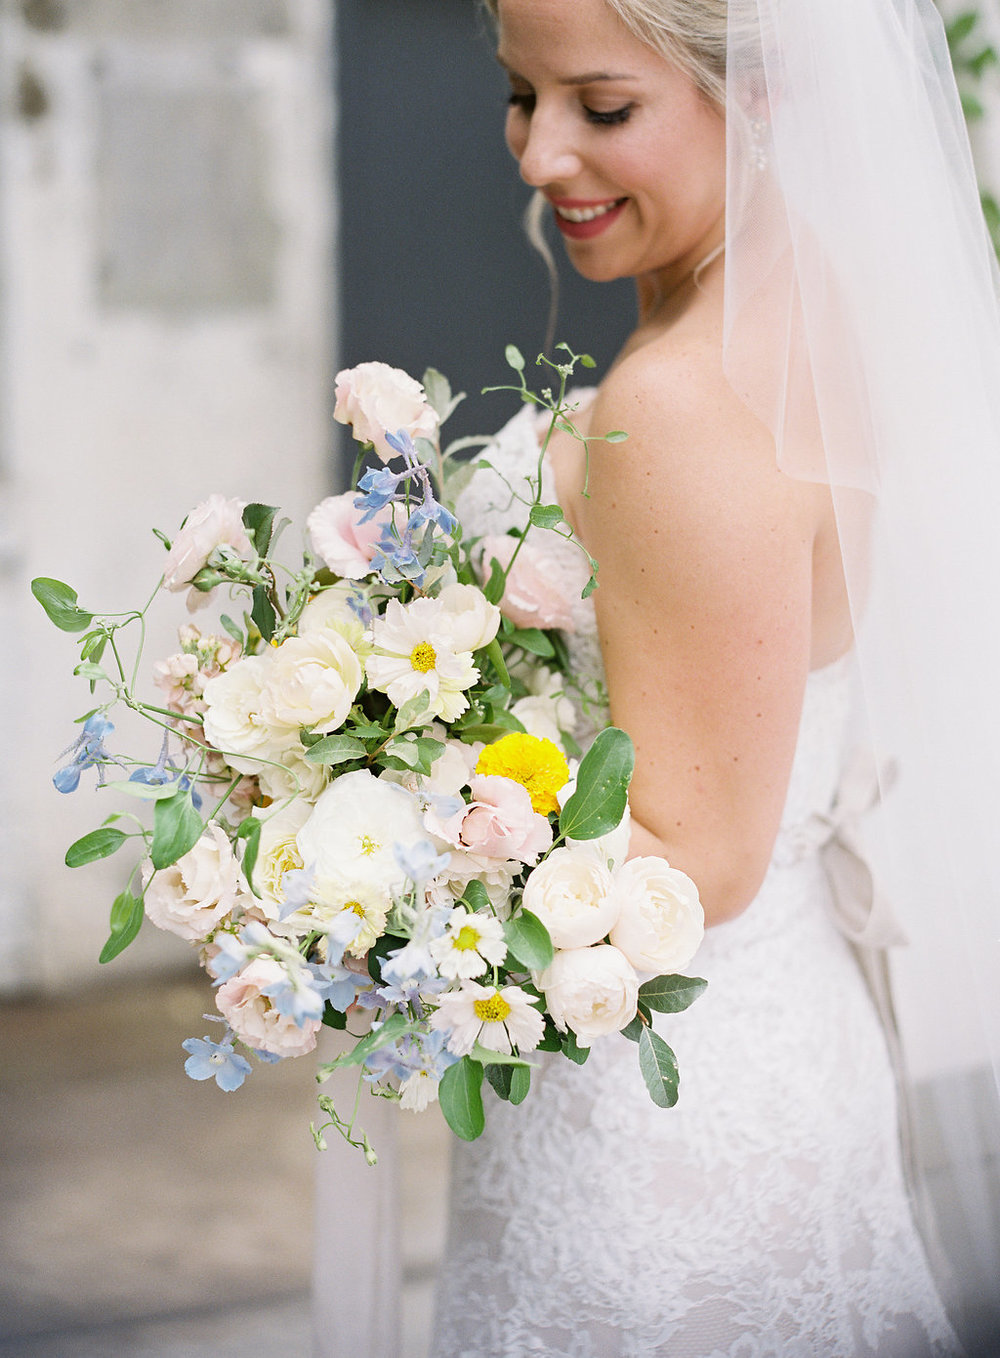 bride-holds-her-bouquet.jpg